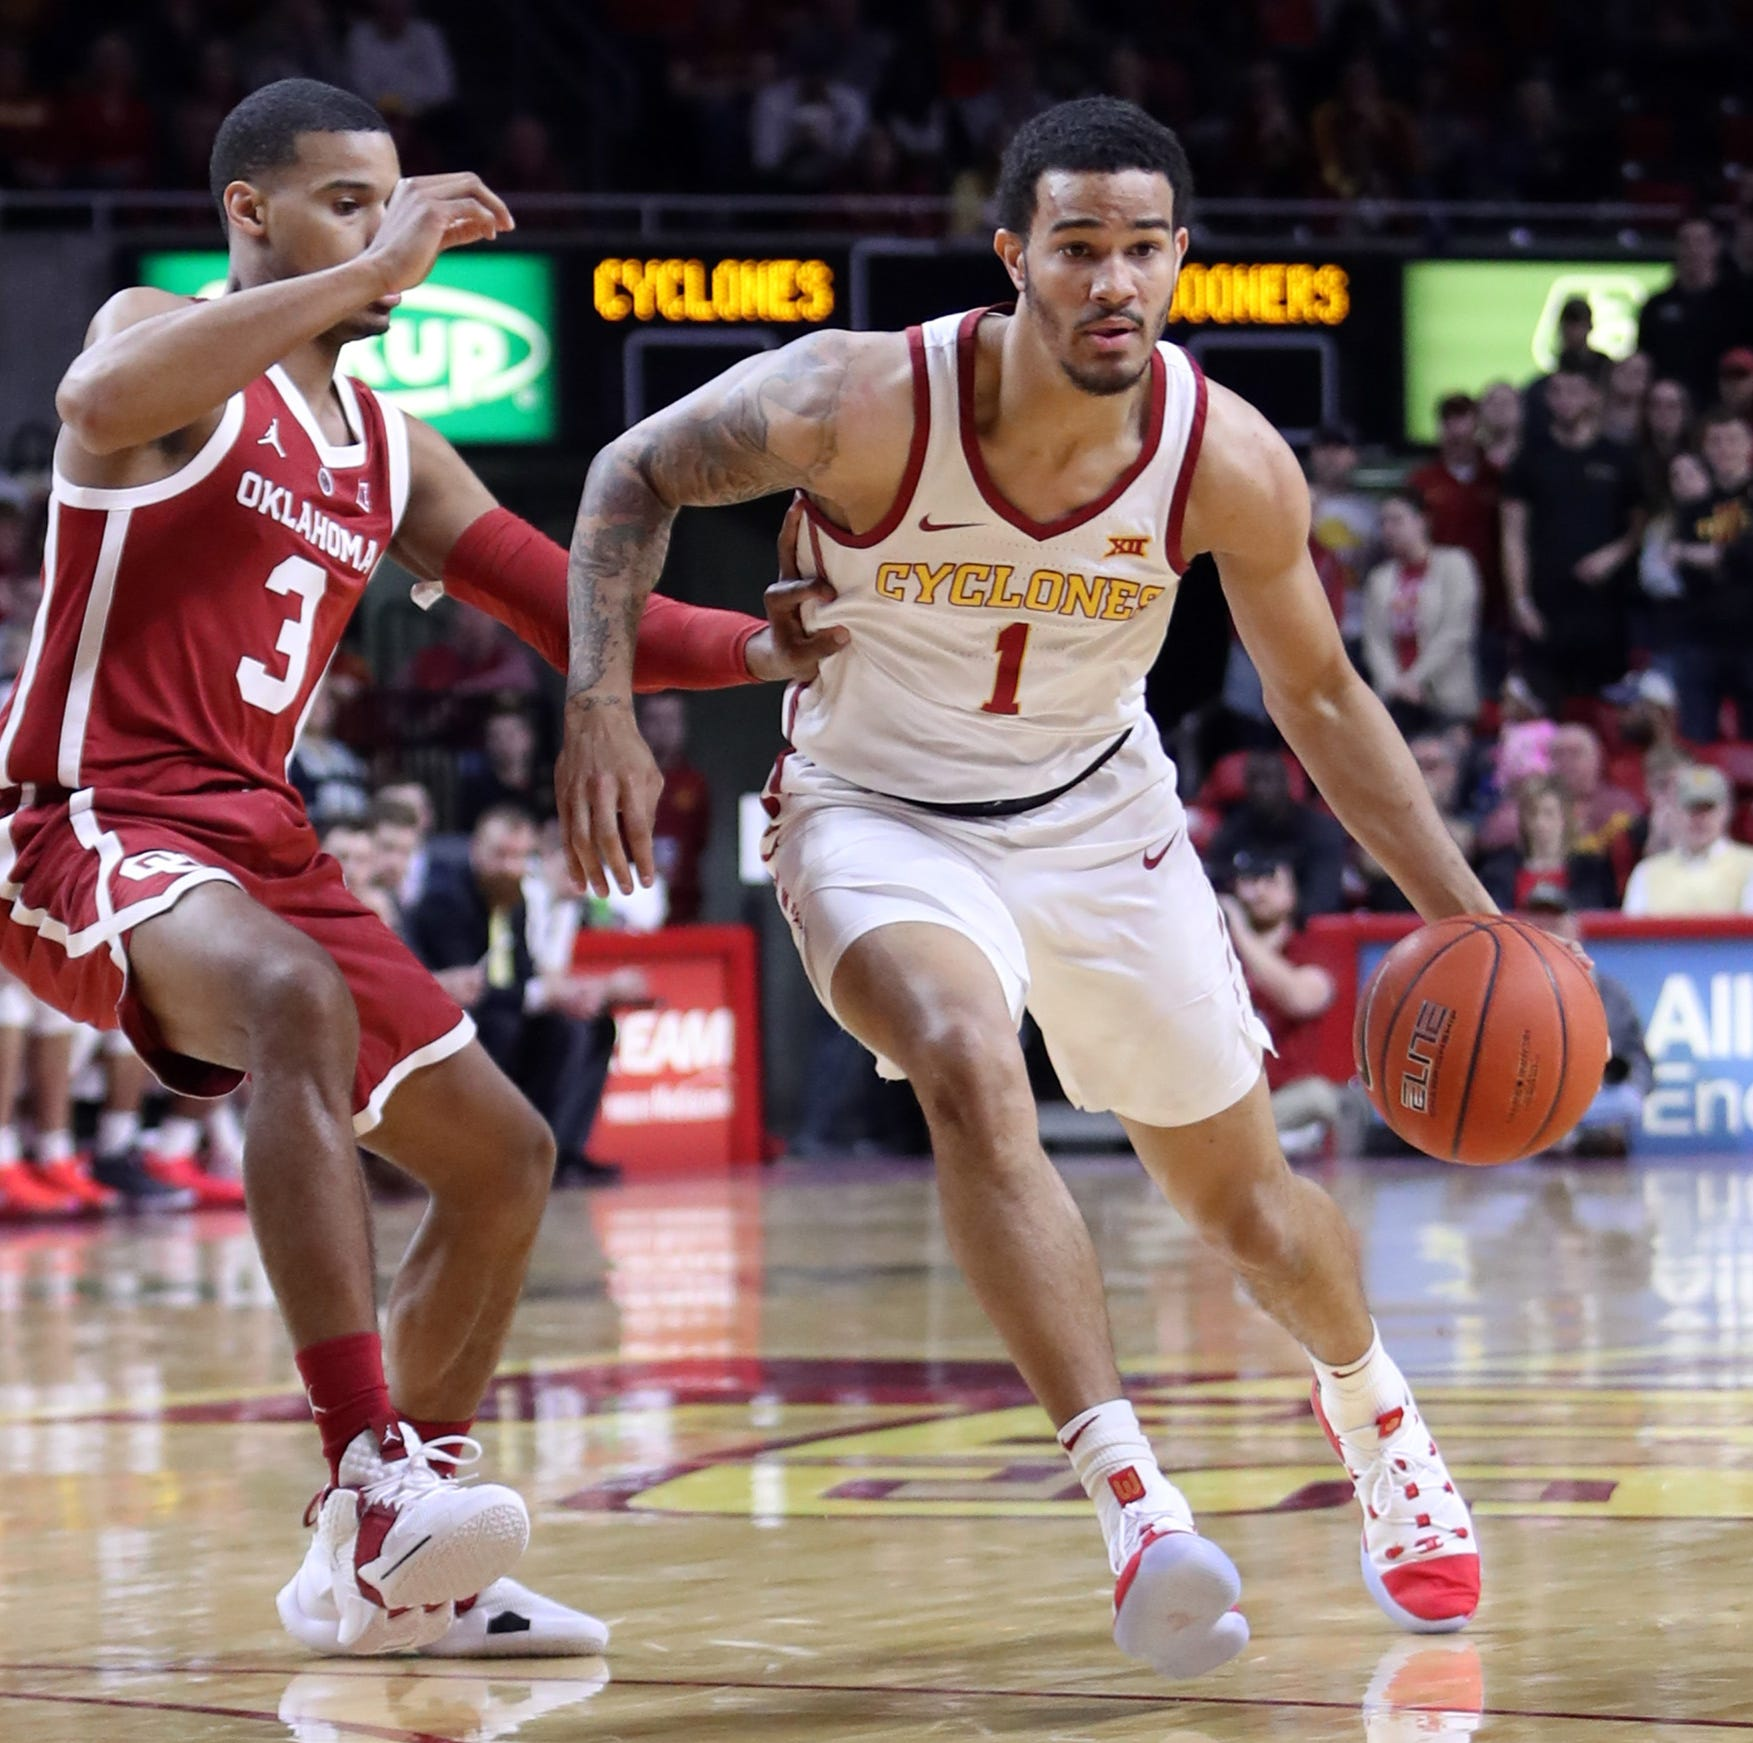 Peterson: For Iowa State men's basketball, it's about momentum more than Big 12 tourney seeding